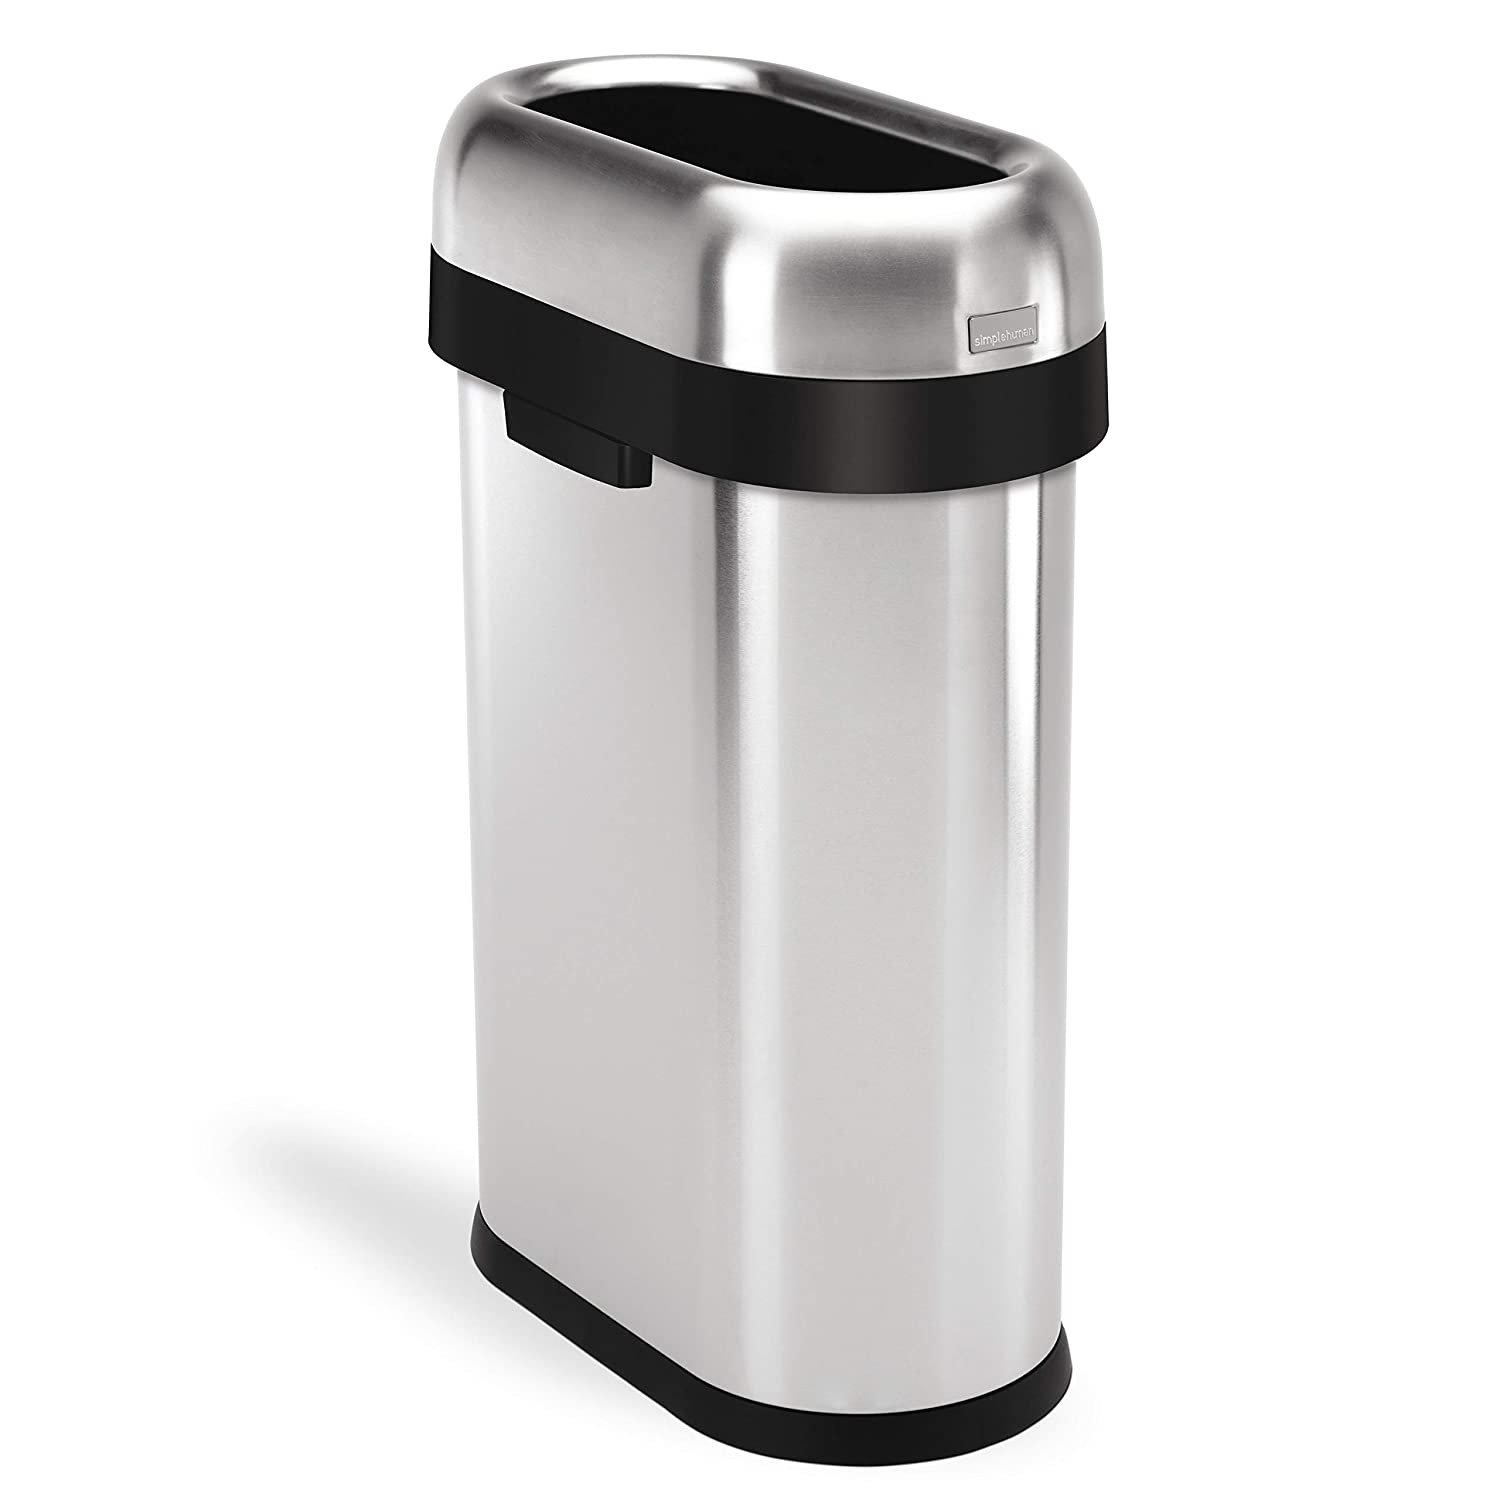 simplehuman Slim Open Trash Can, Commercial Grade, Stainless Steel, 50 L / 13 Gal